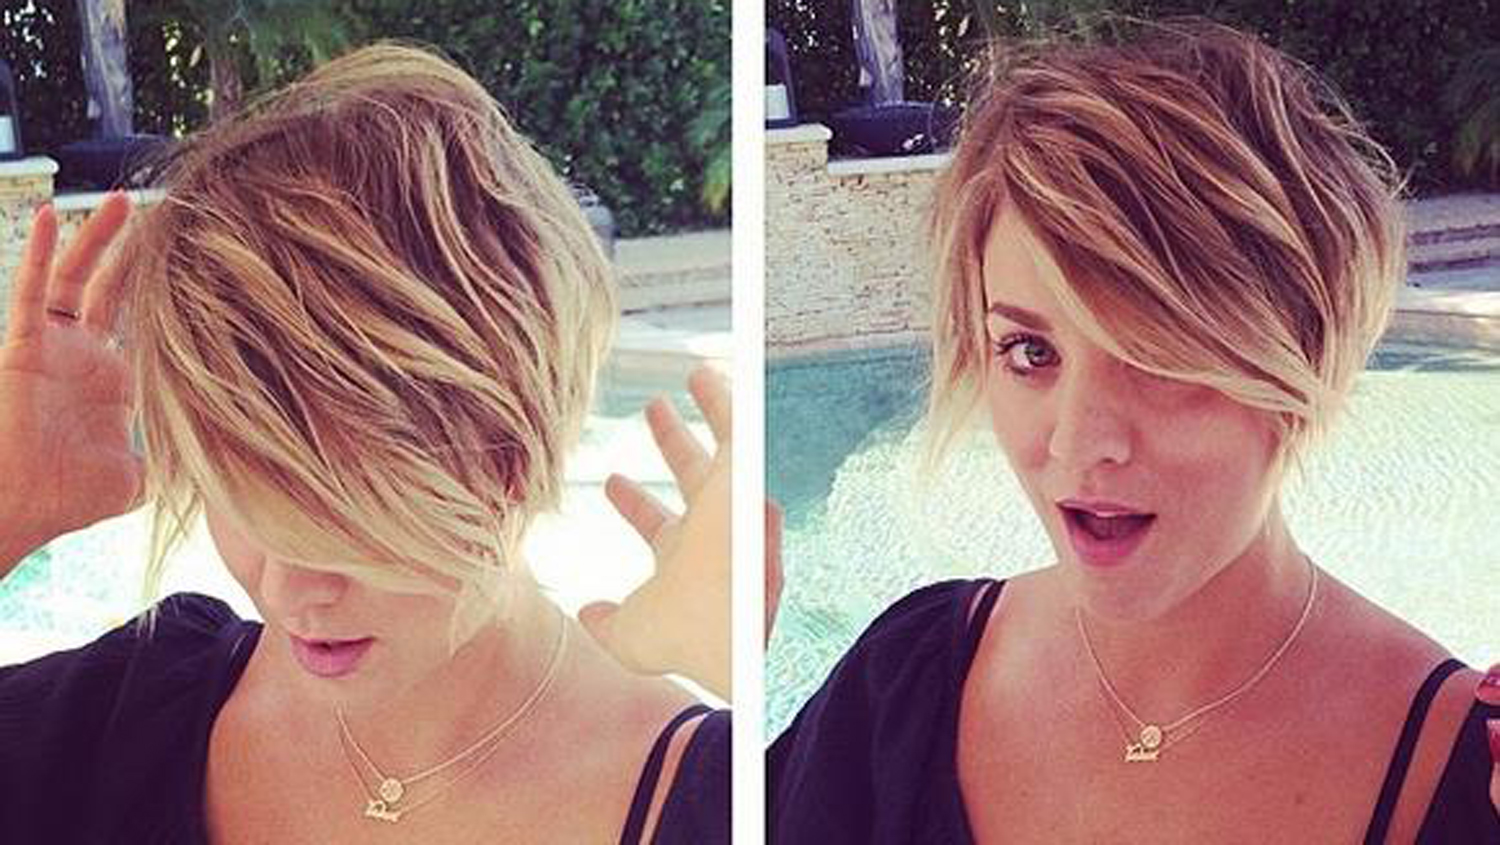 Big Bang Theory Star Kaley Cuoco Chops Hair Into Pixie